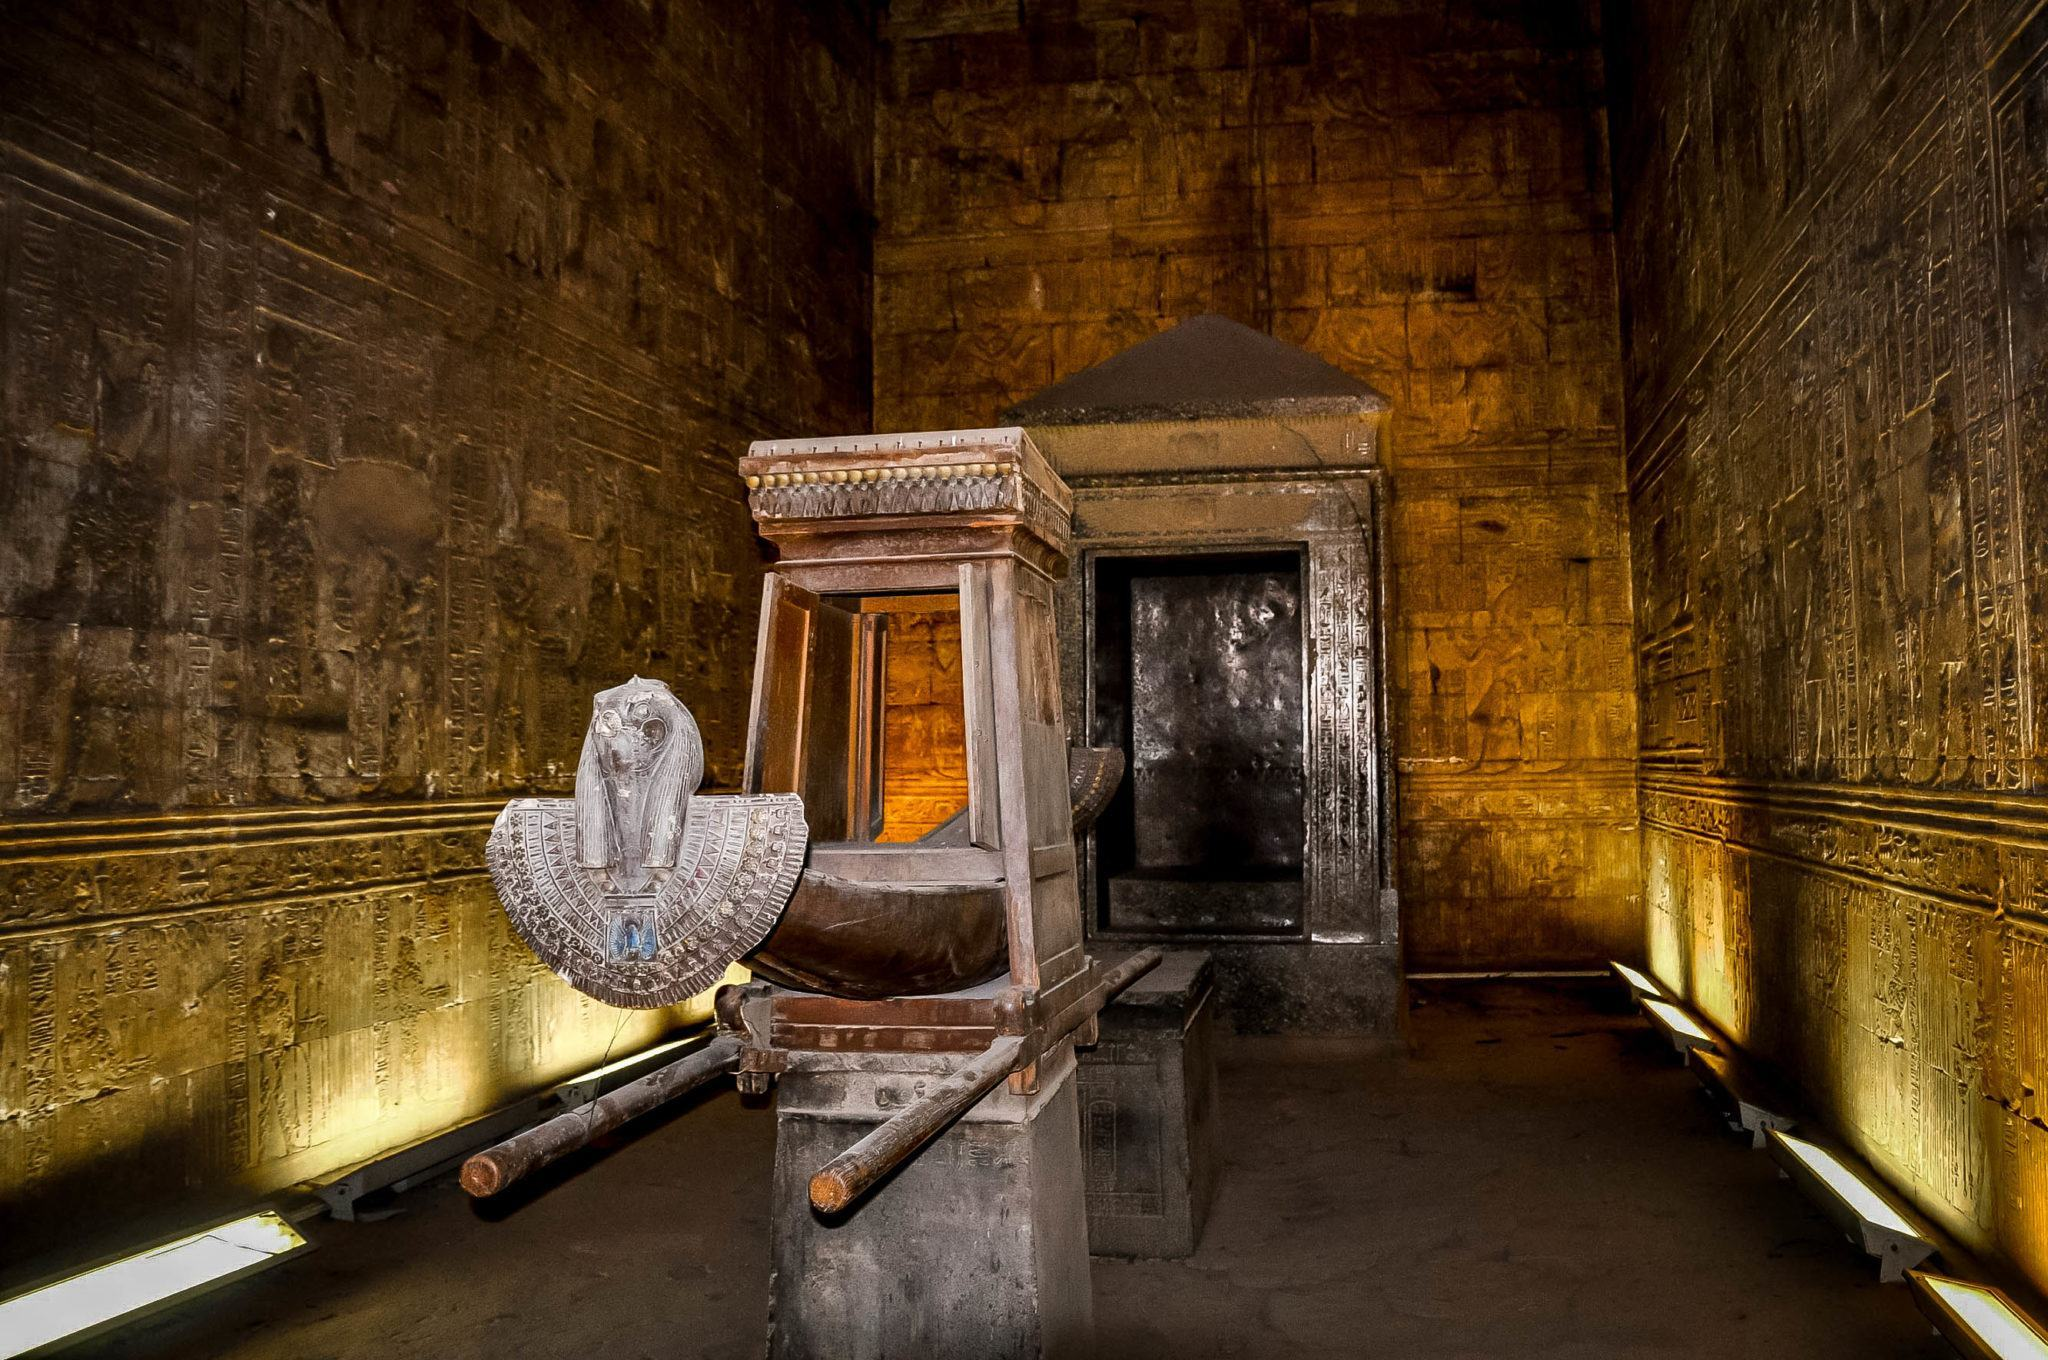 An offering to the god Horus:  the funeral boat at Edfu temple in Egypt. The sanctuary is full of Horus images and is an extremely impressive sight to see.  The Horus ancient Egypt carvings are remarkably preserved.